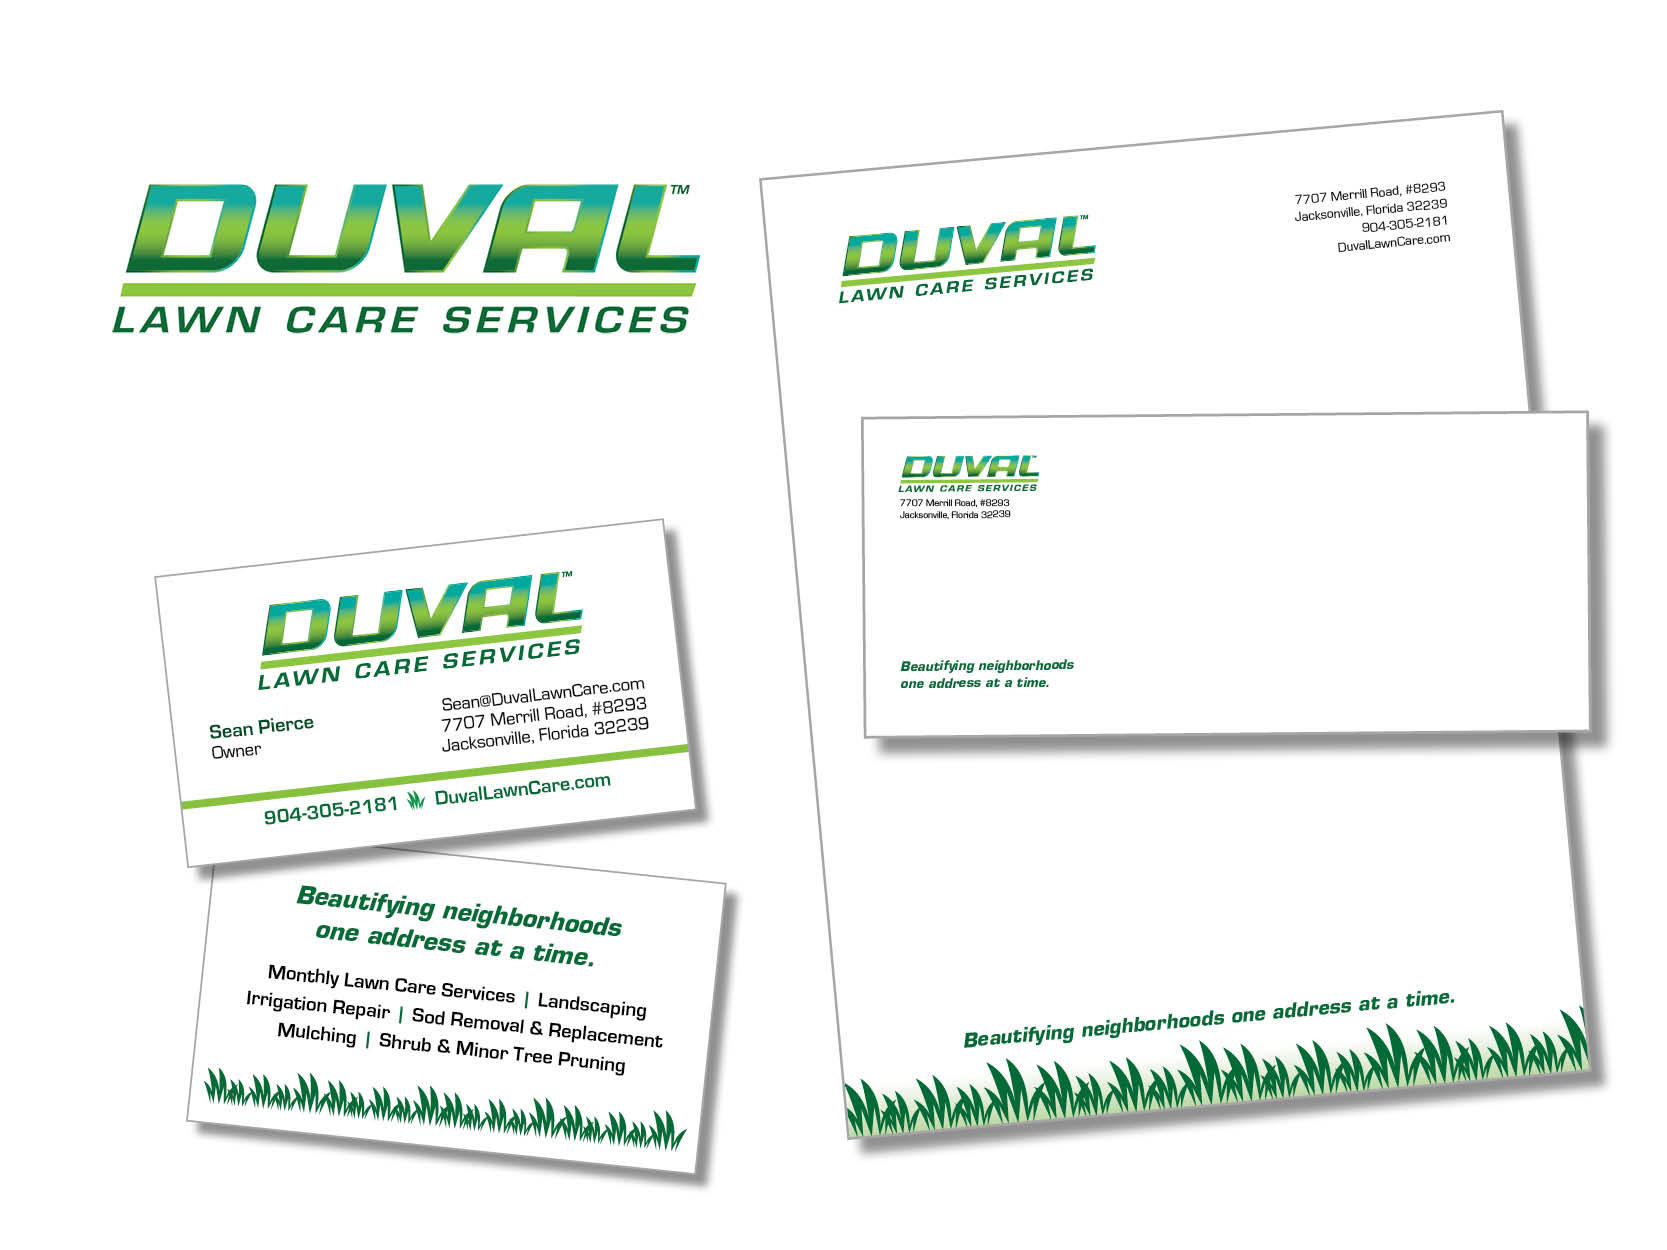 duval lawn care graphics